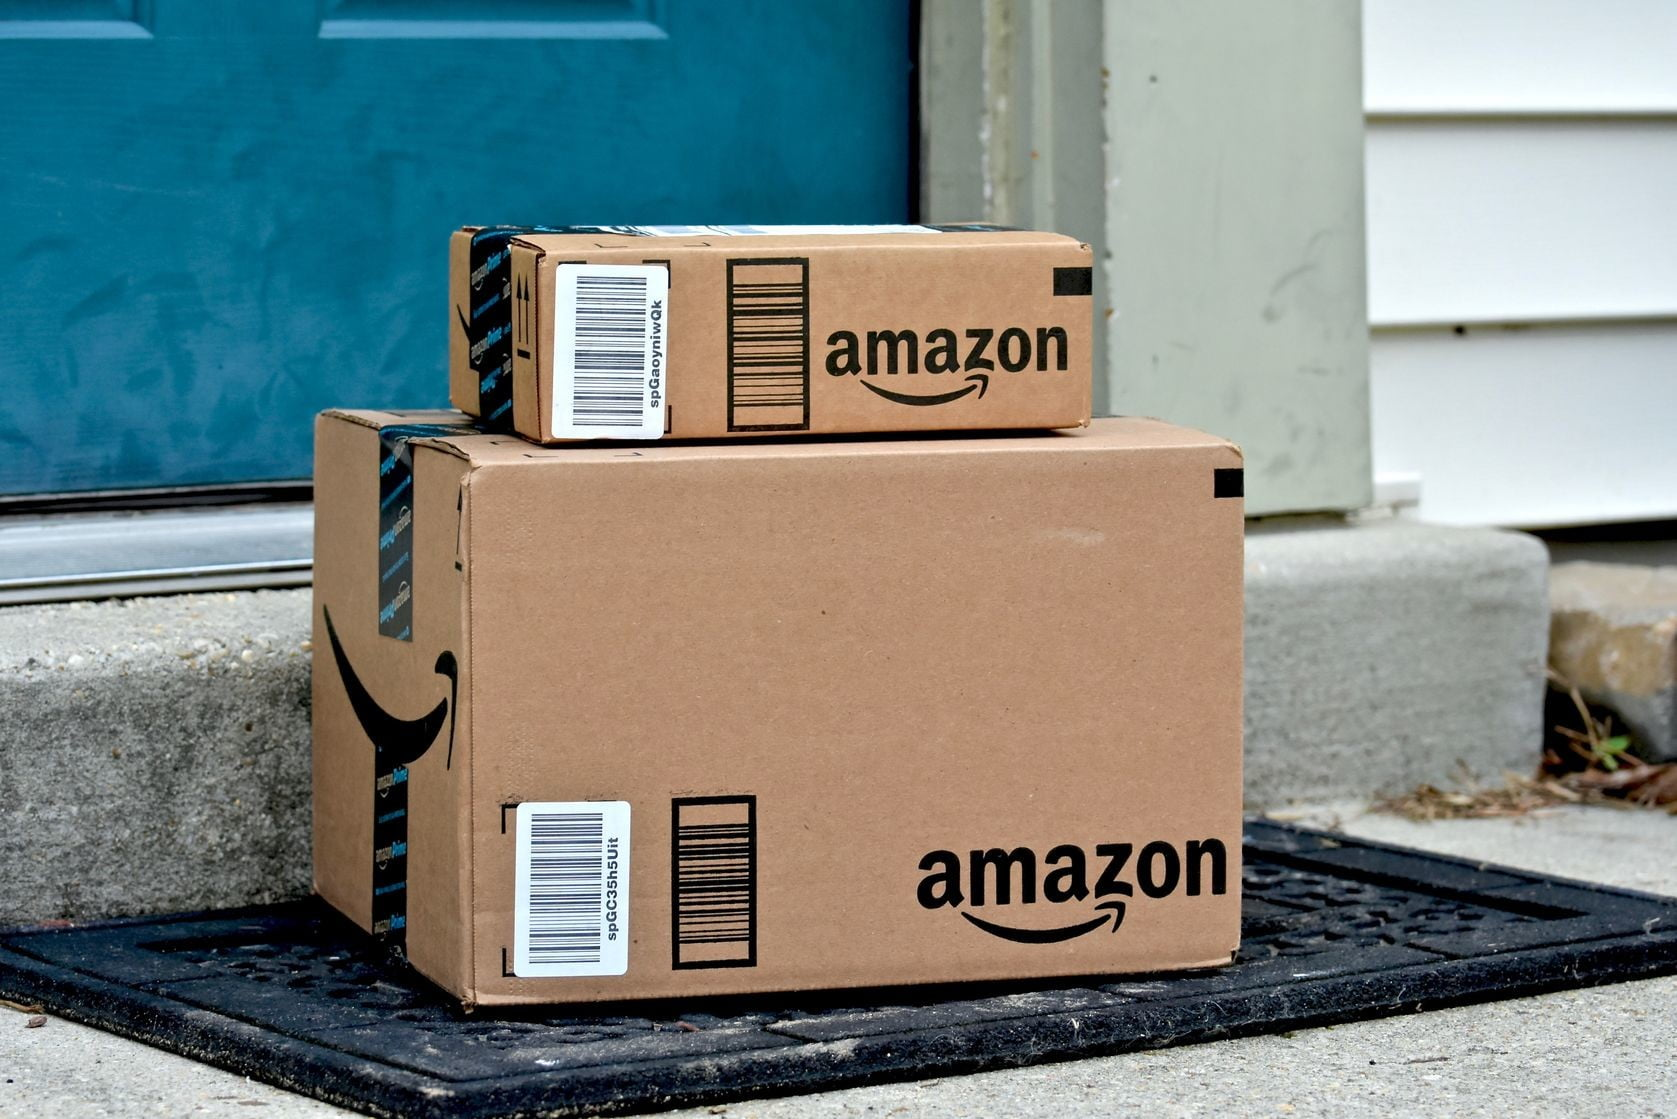 Amazon says it blocked billions of counterfeit products in 2020